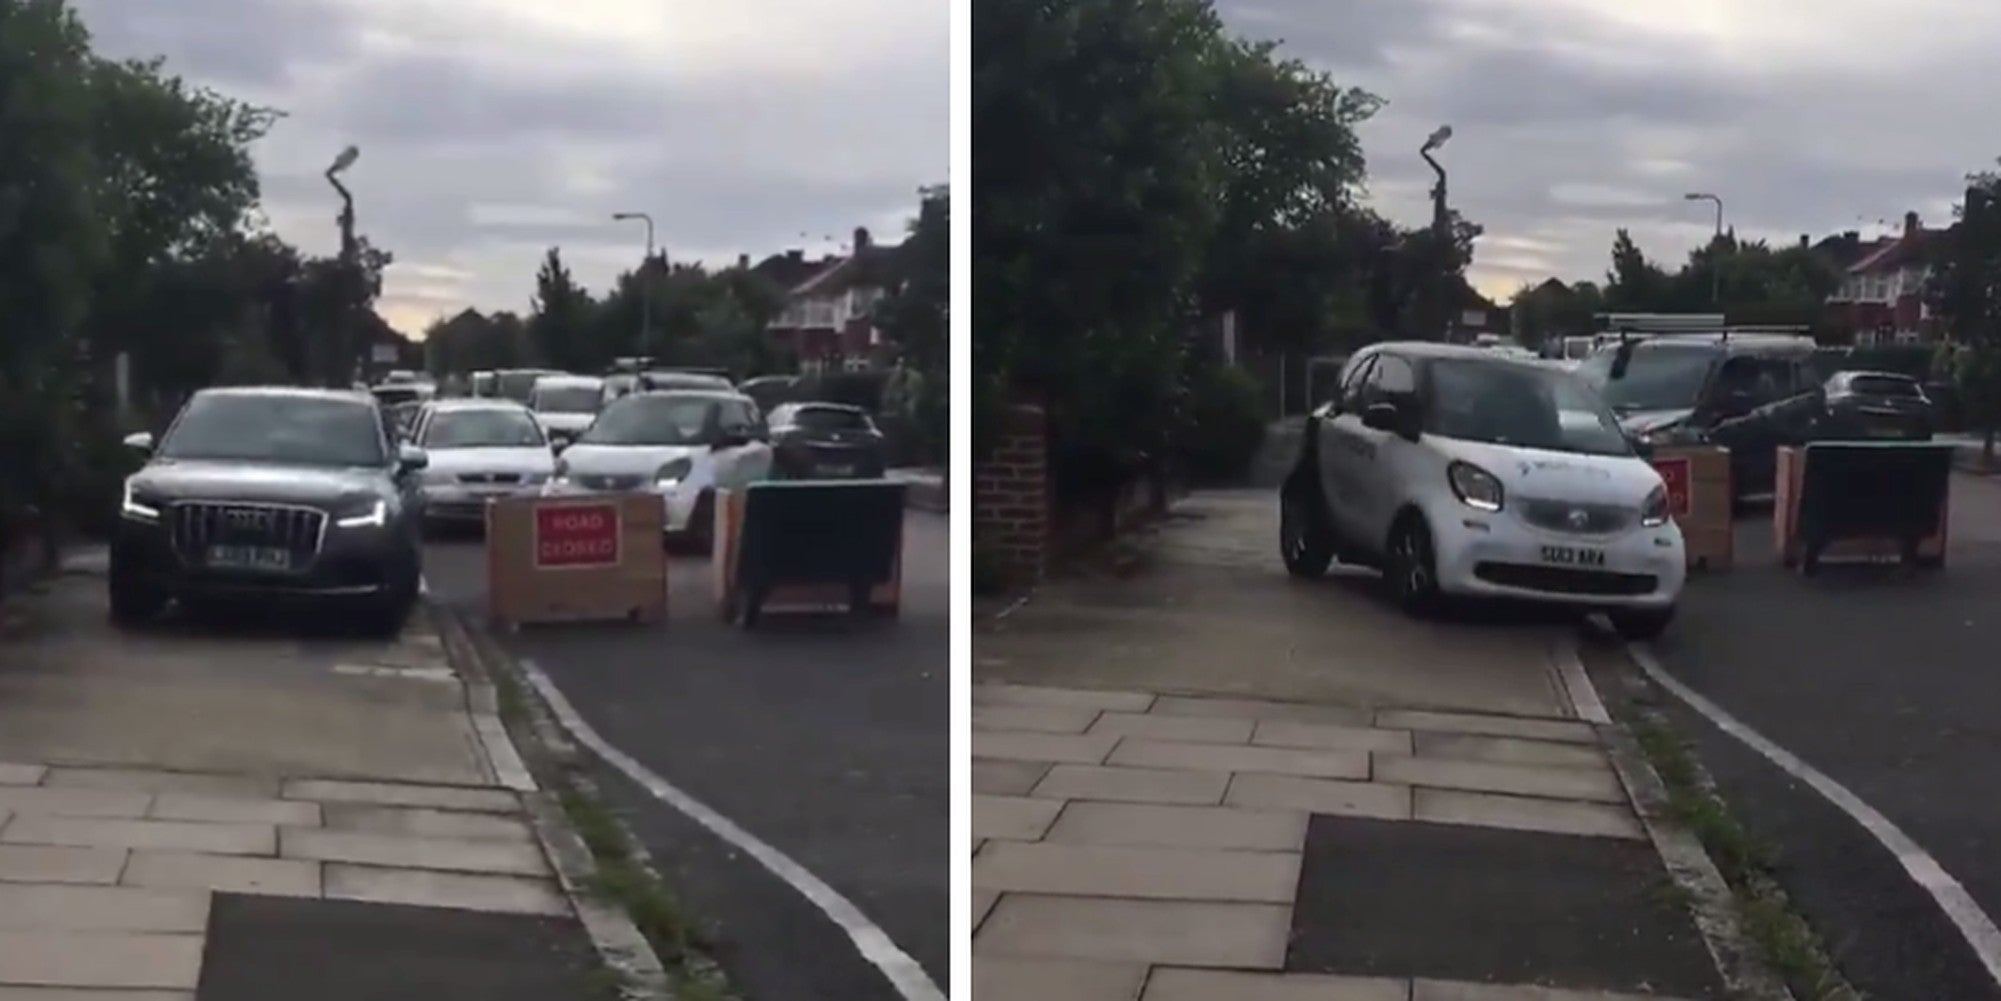 Shocking video shows dangerous drivers speeding over the pavement to avoid road blocks